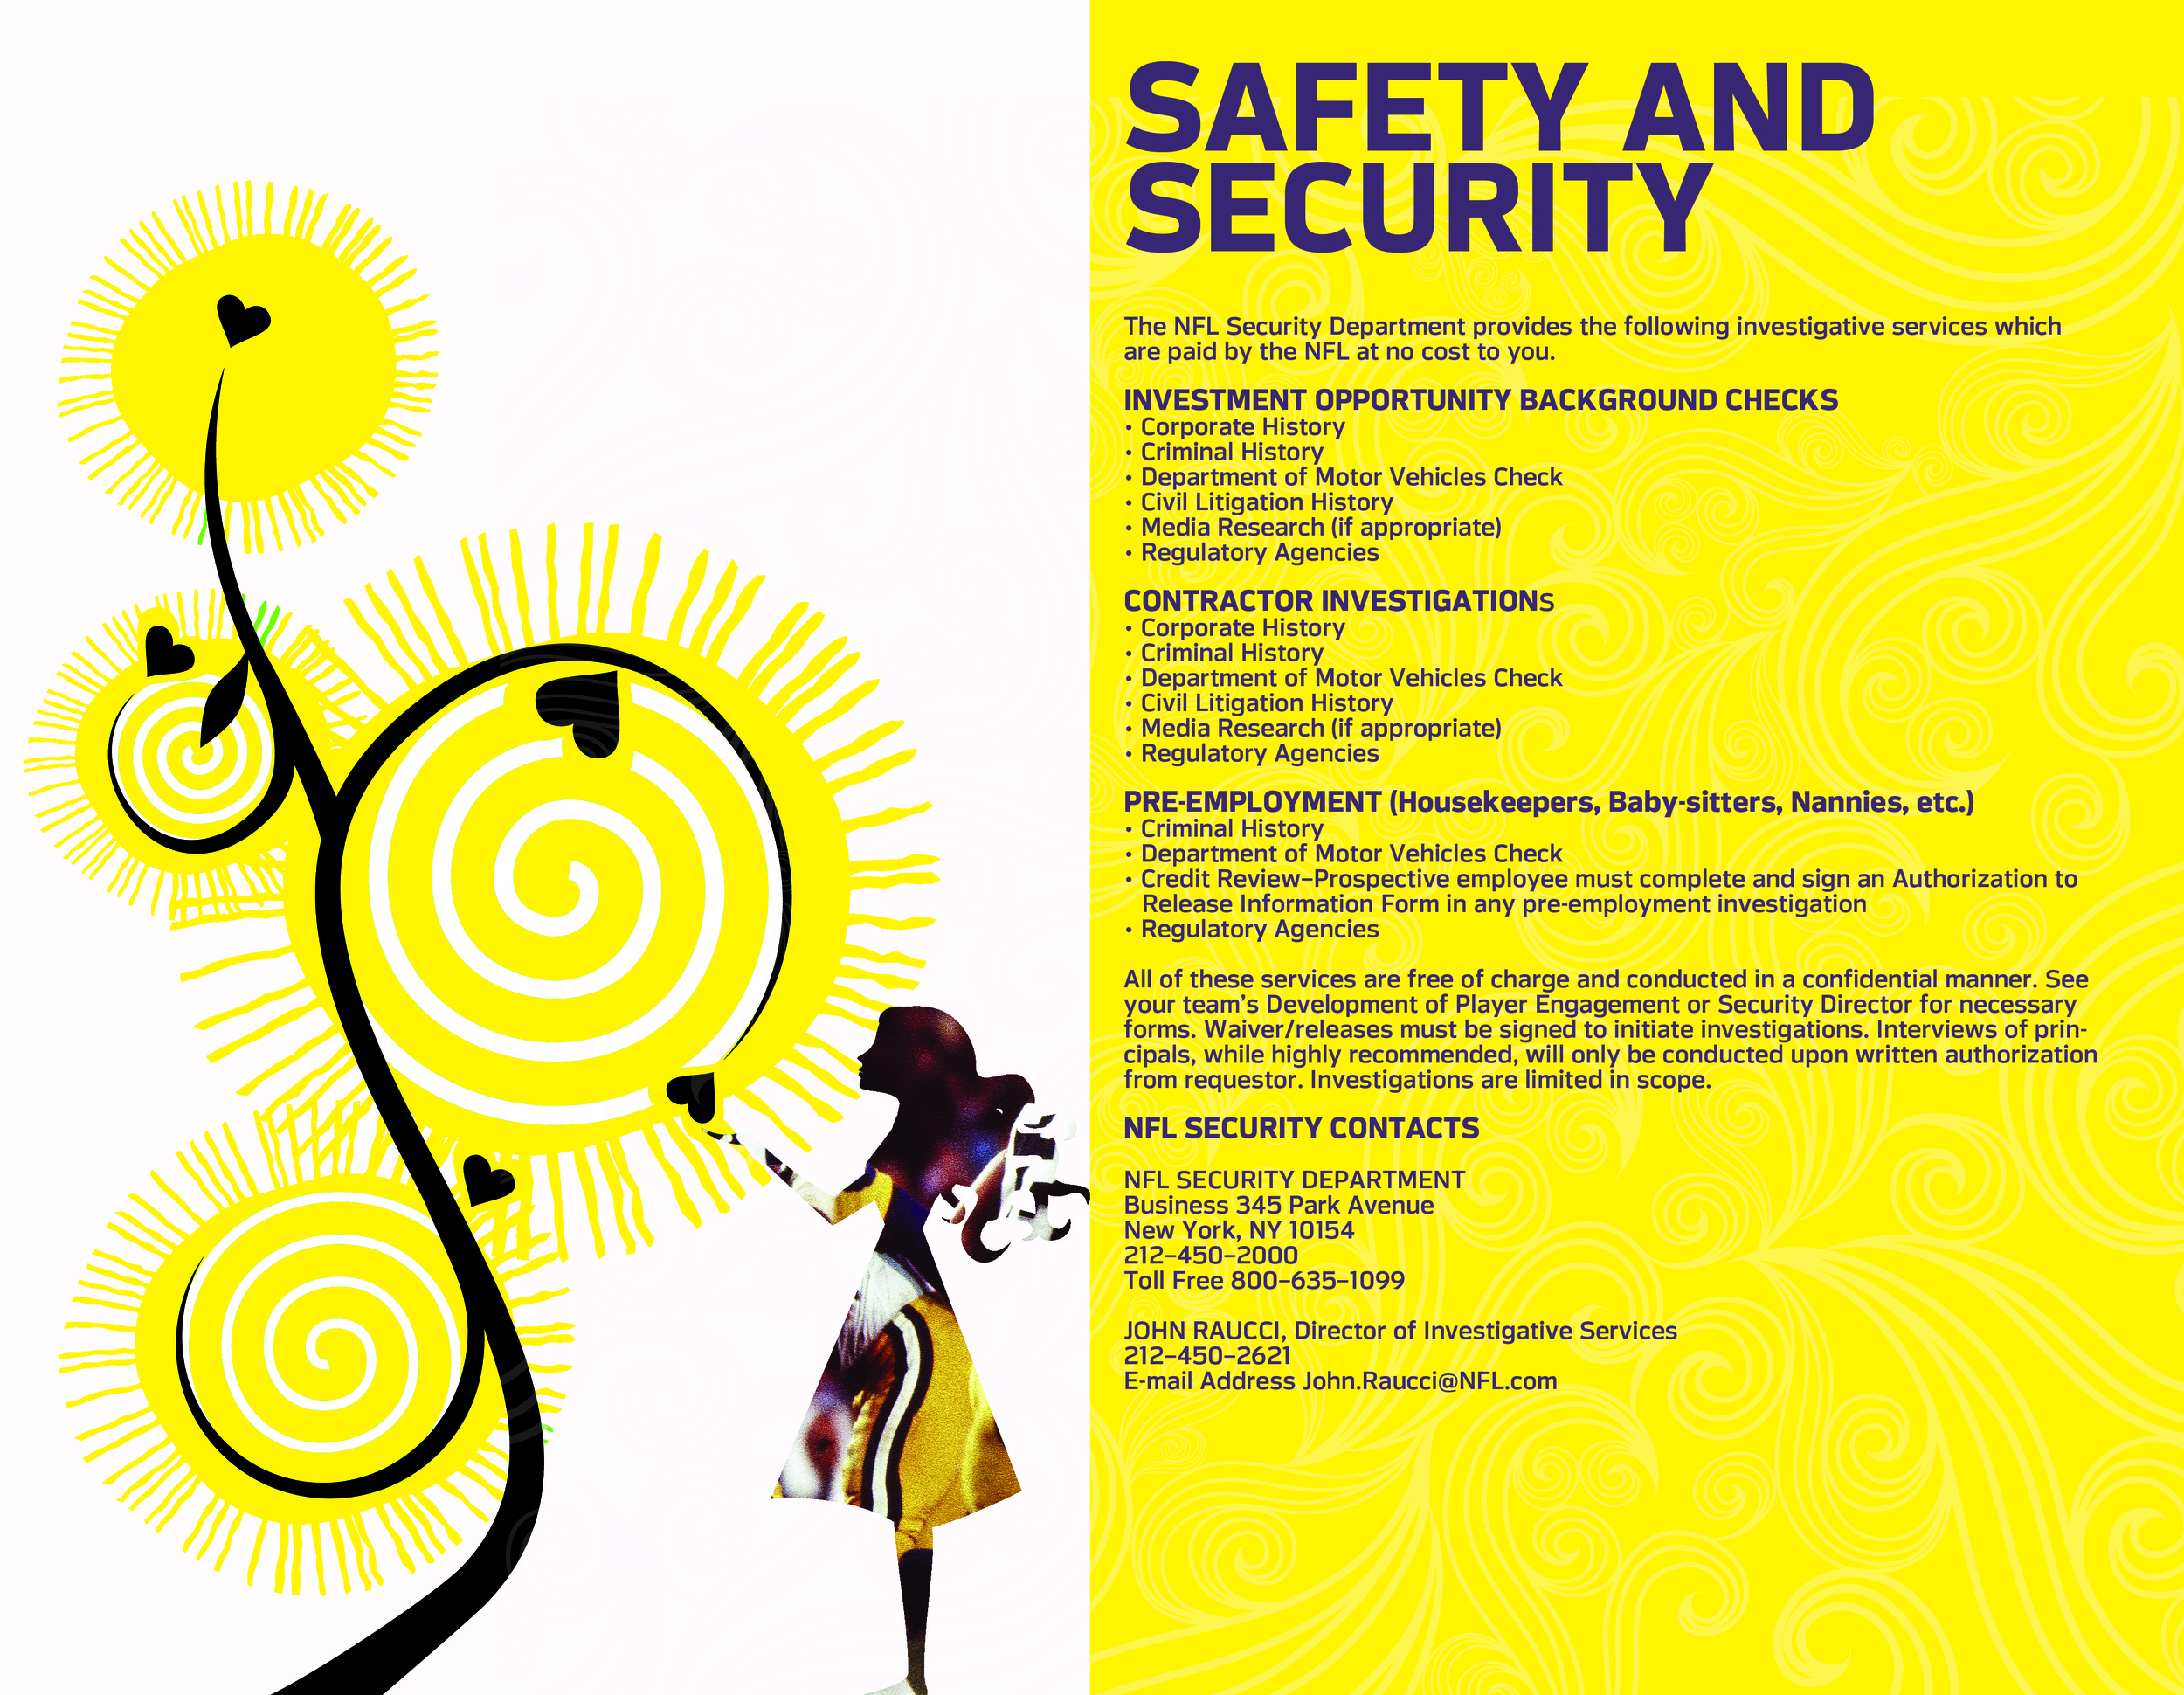 SAFETY AND SECURITY revised.jpg